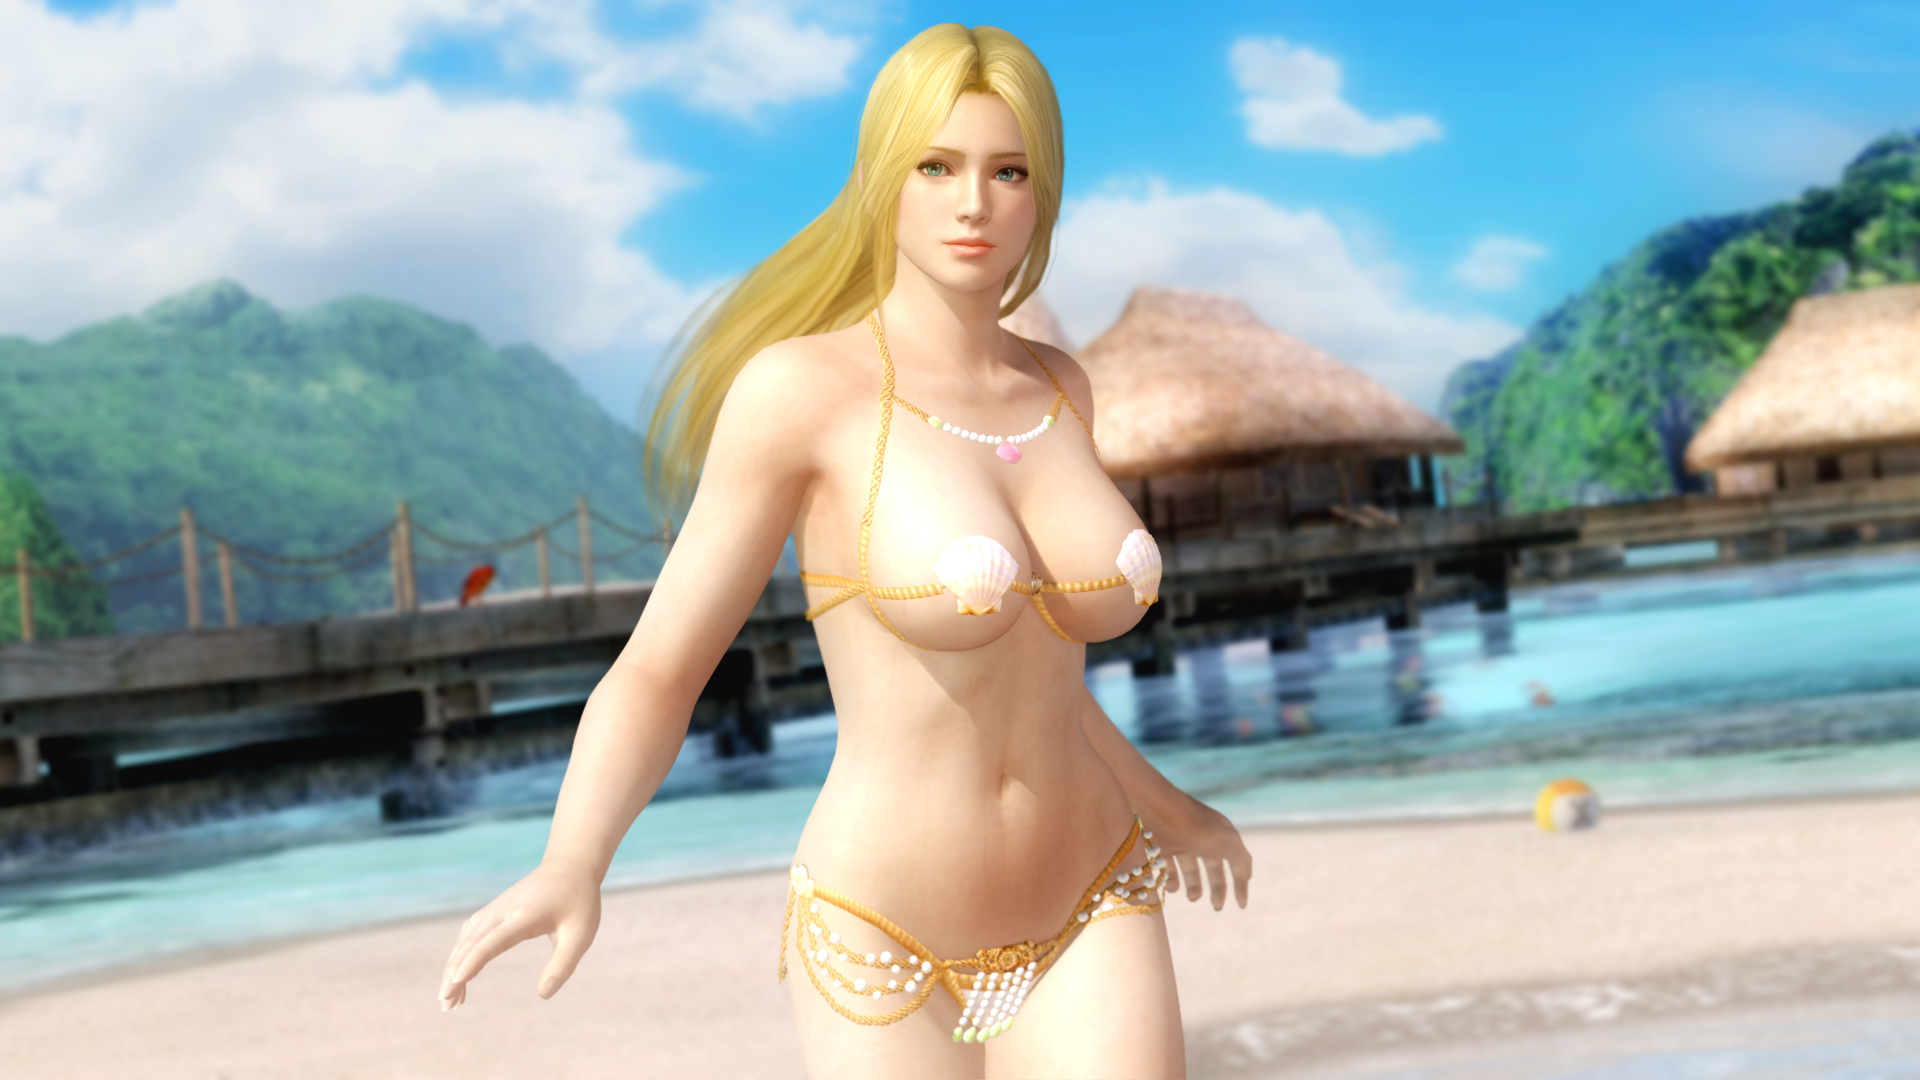 Sexy Beach 3 Game - Free Porn Videos - YouPorn